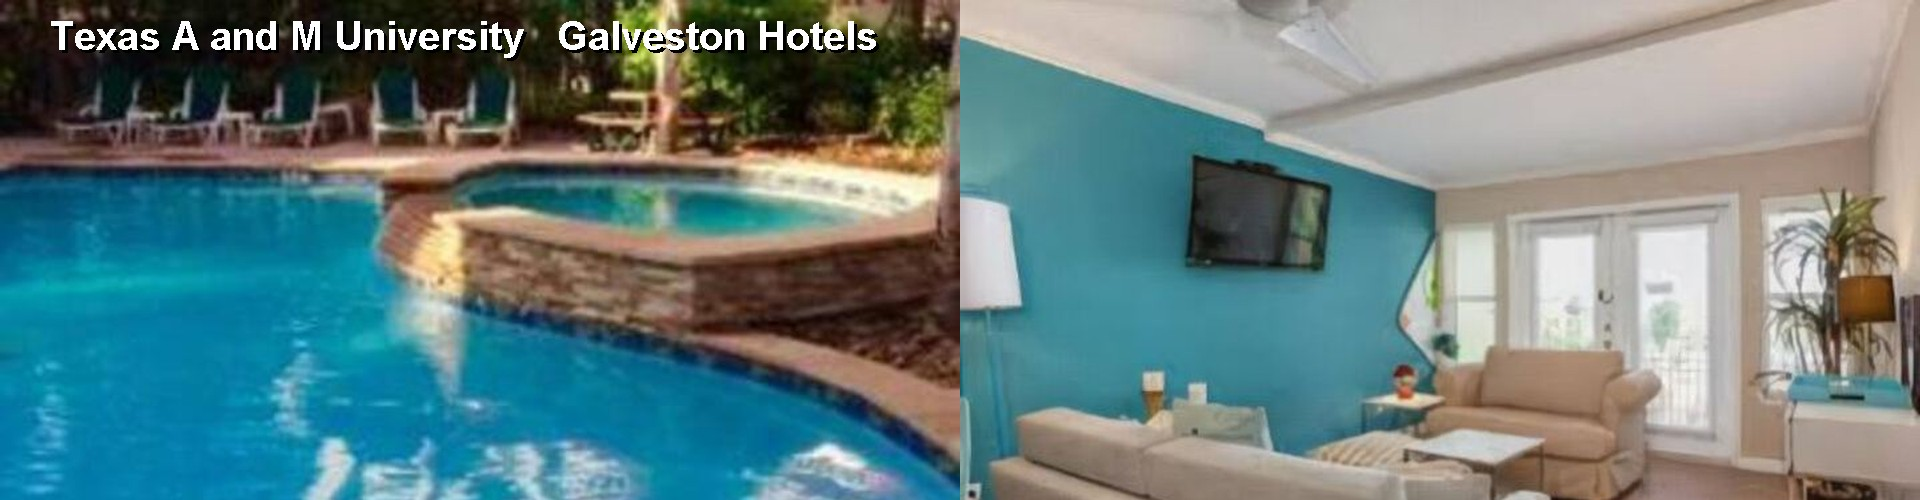 5 Best Hotels near Texas A and M University Galveston